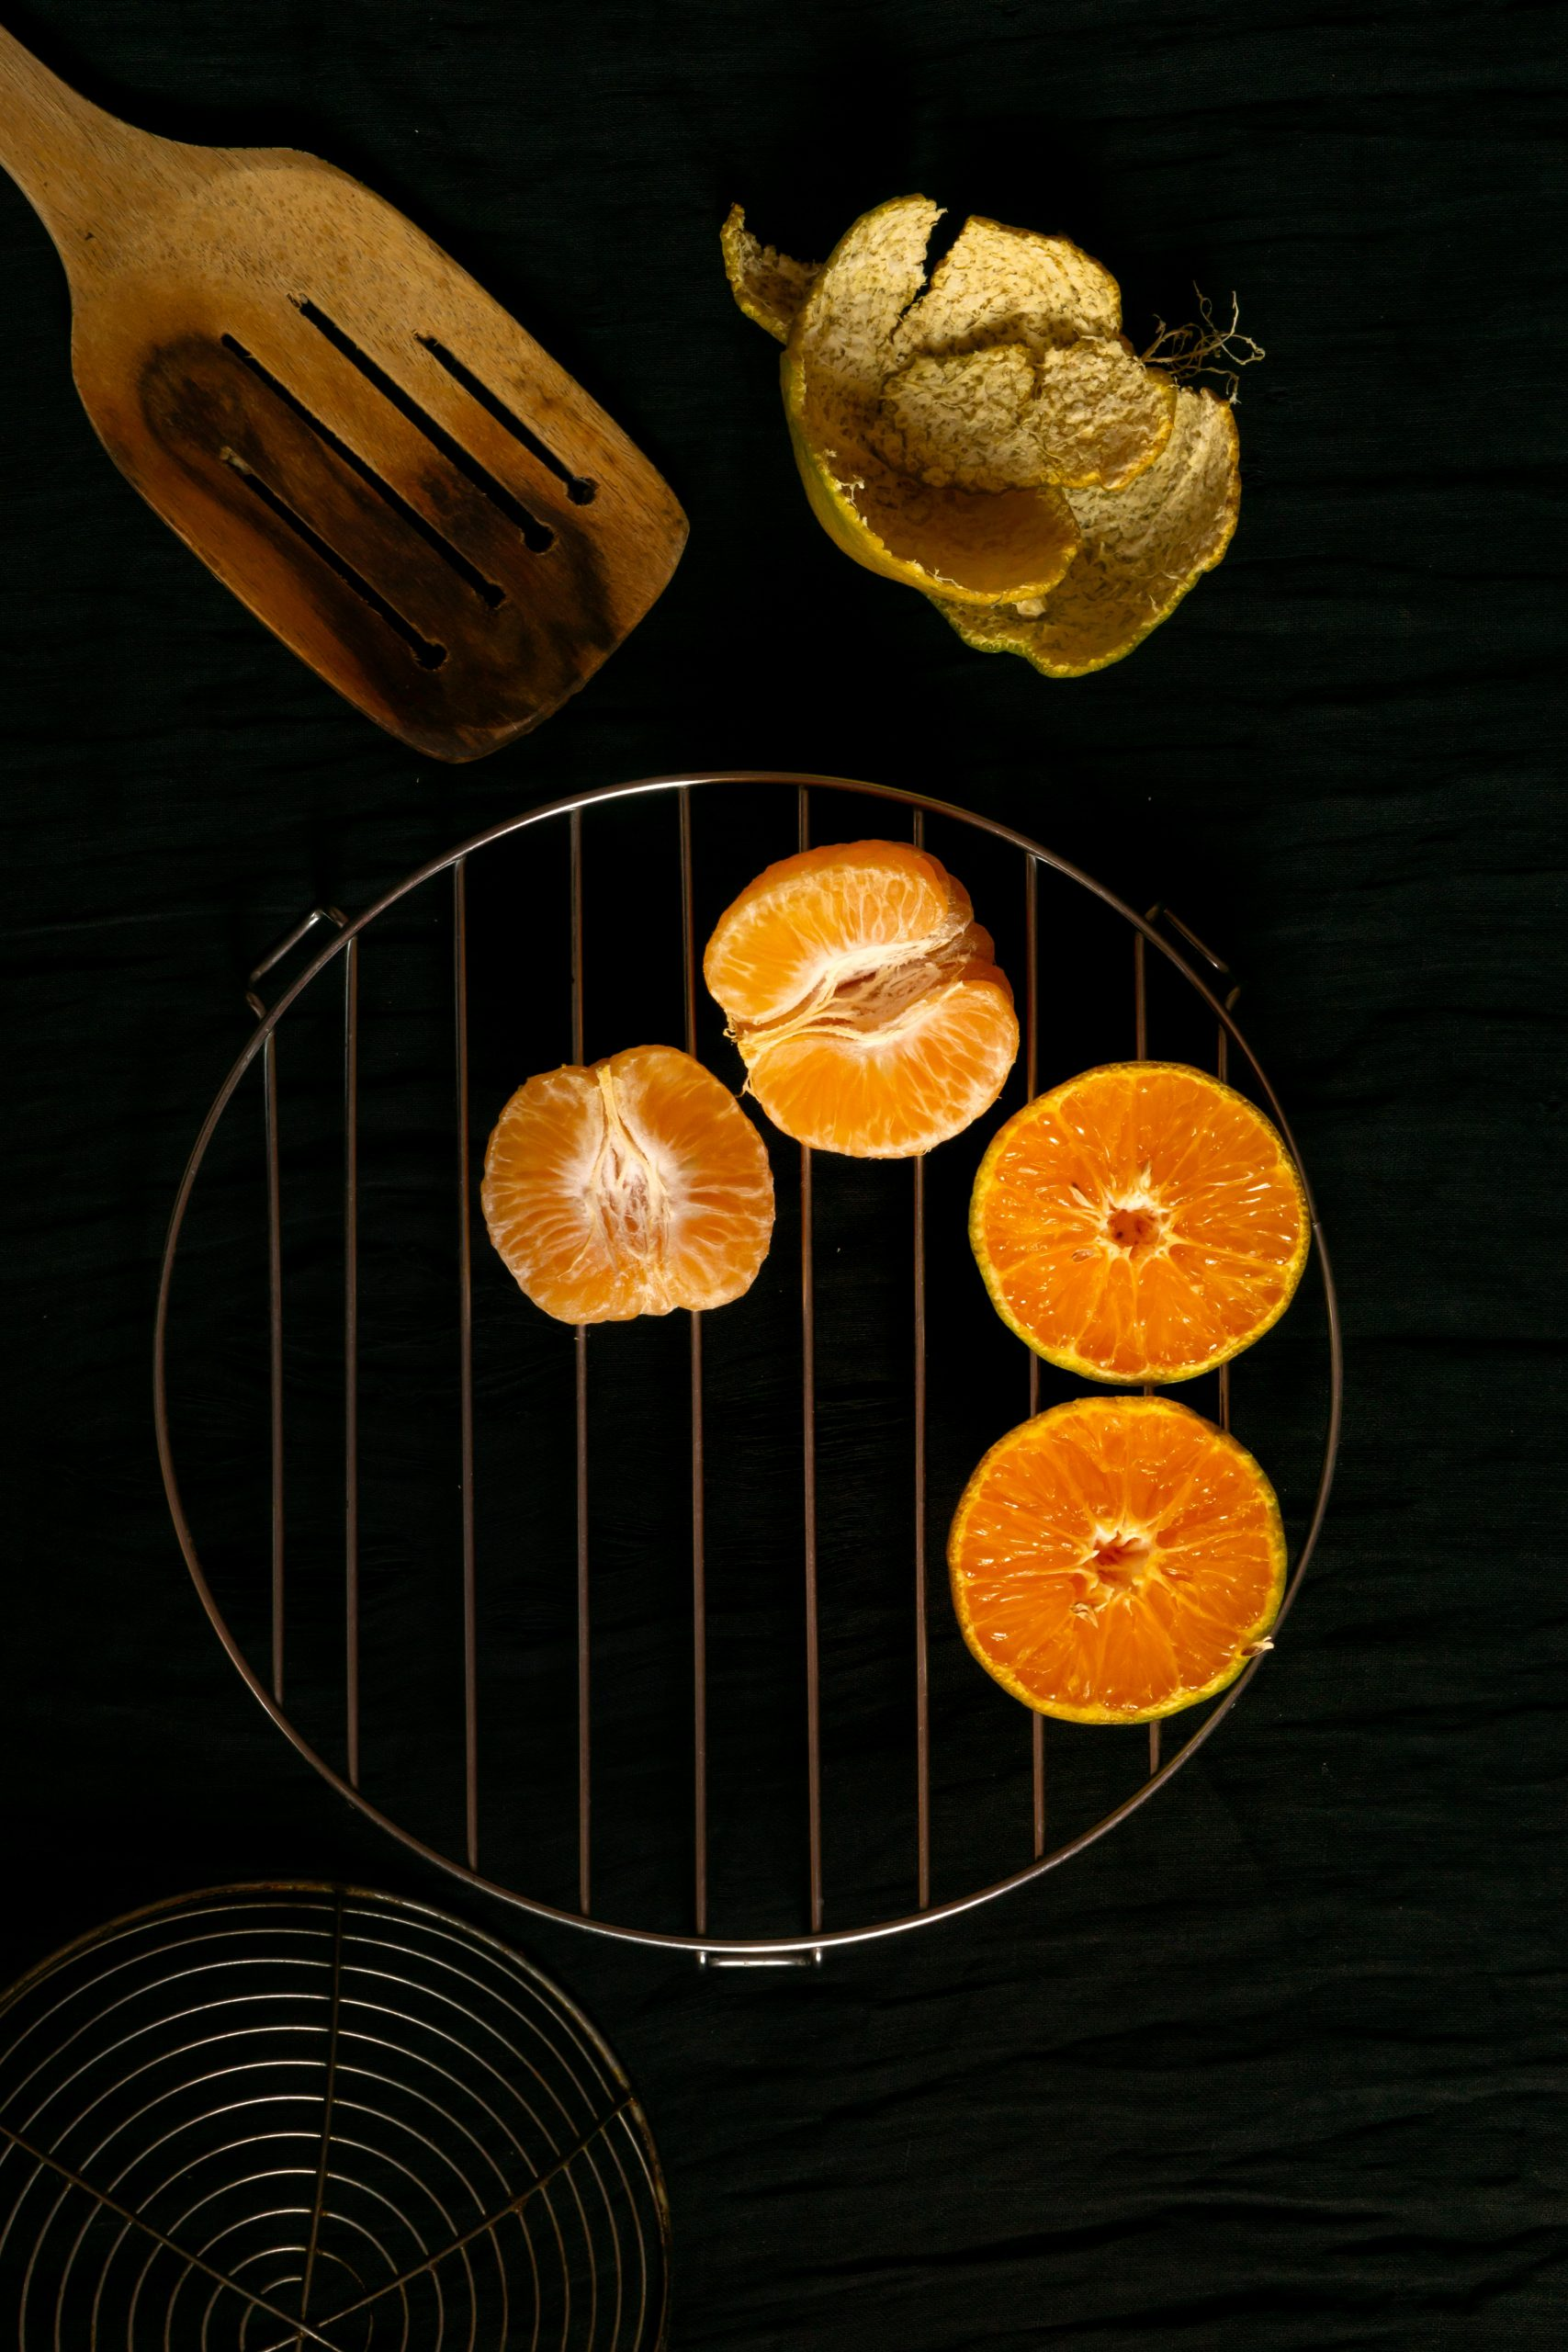 Peeled orange on table